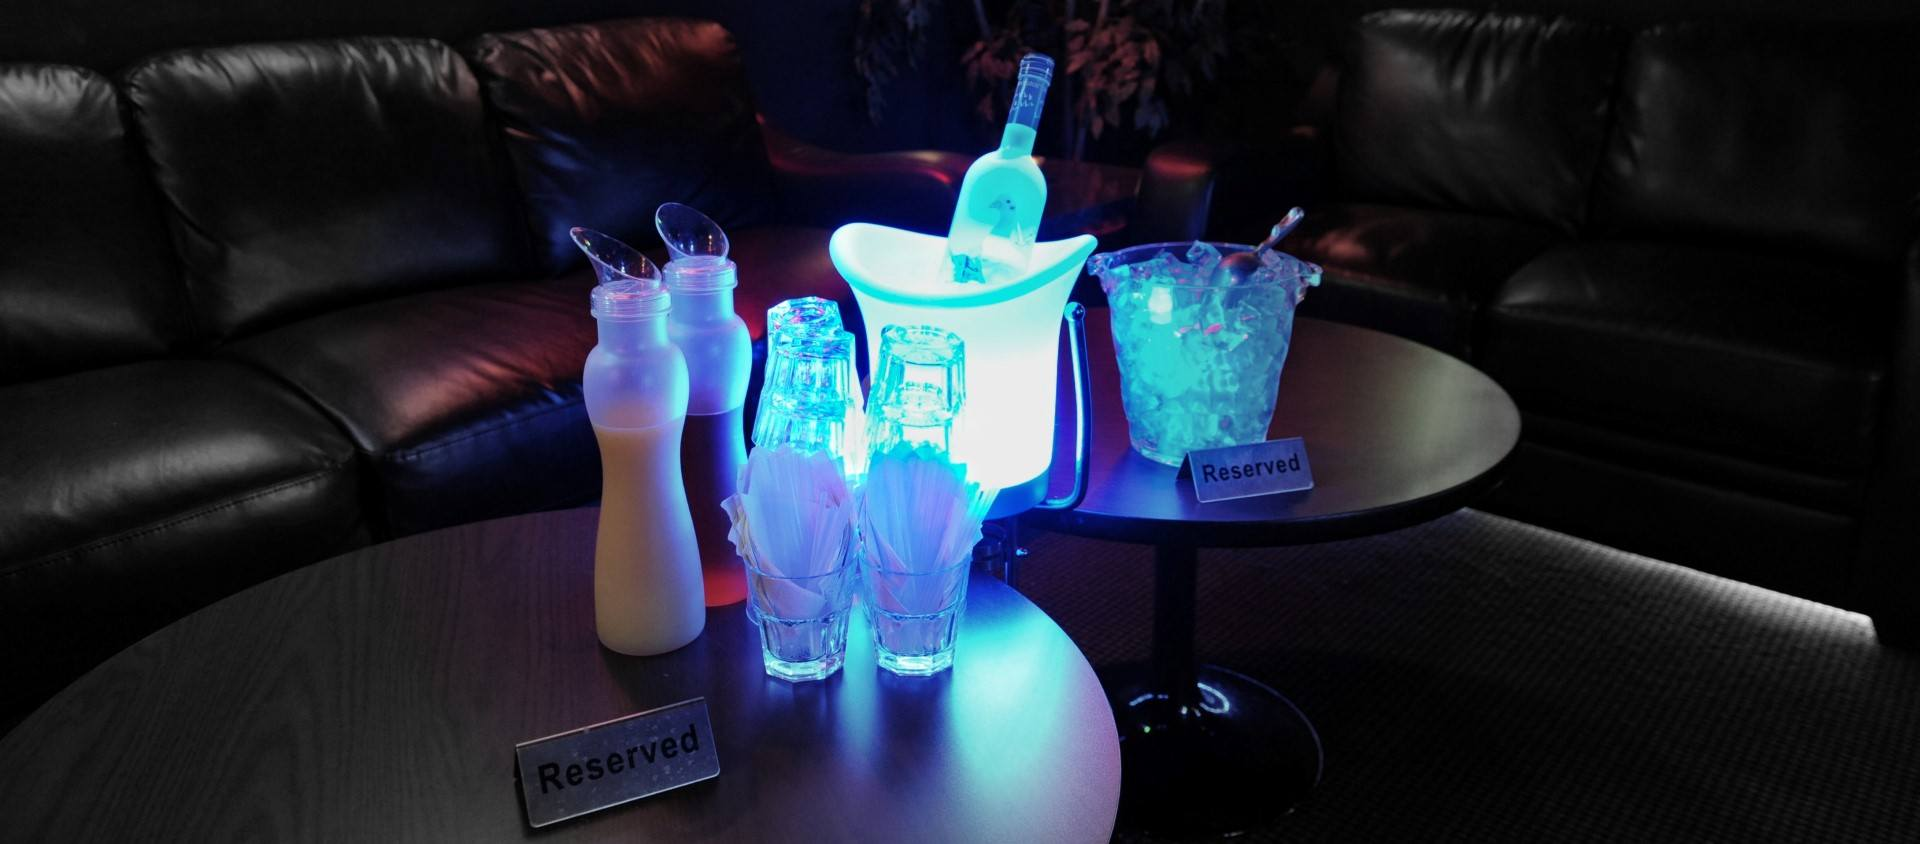 A picture of a nightclub table that is ready for bottle service